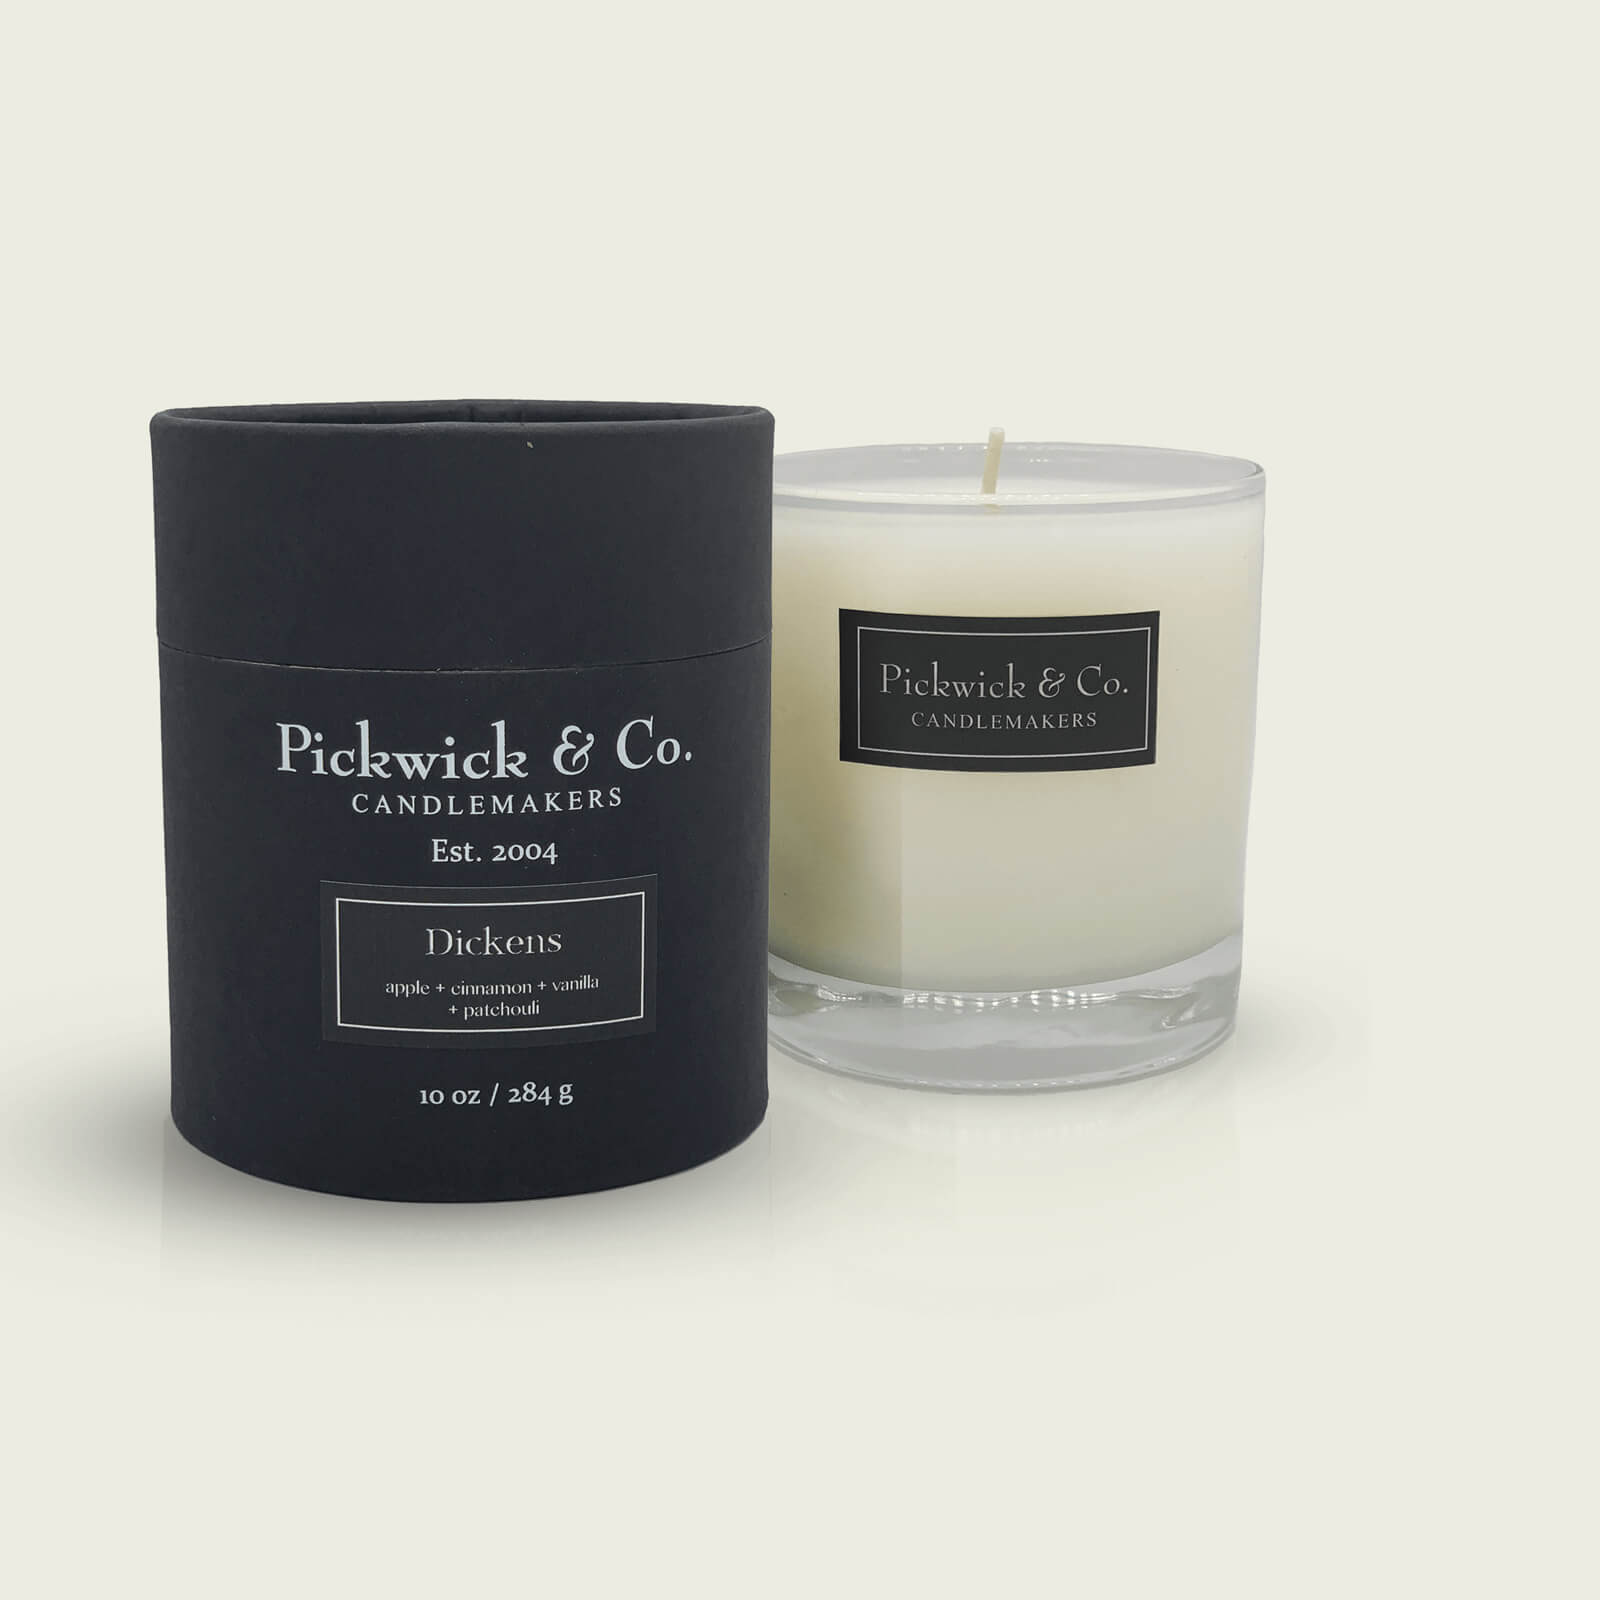 A Pickwick & Co. holiday candle called Dickens featuring apple, cinnamon, vanilla and patchouli